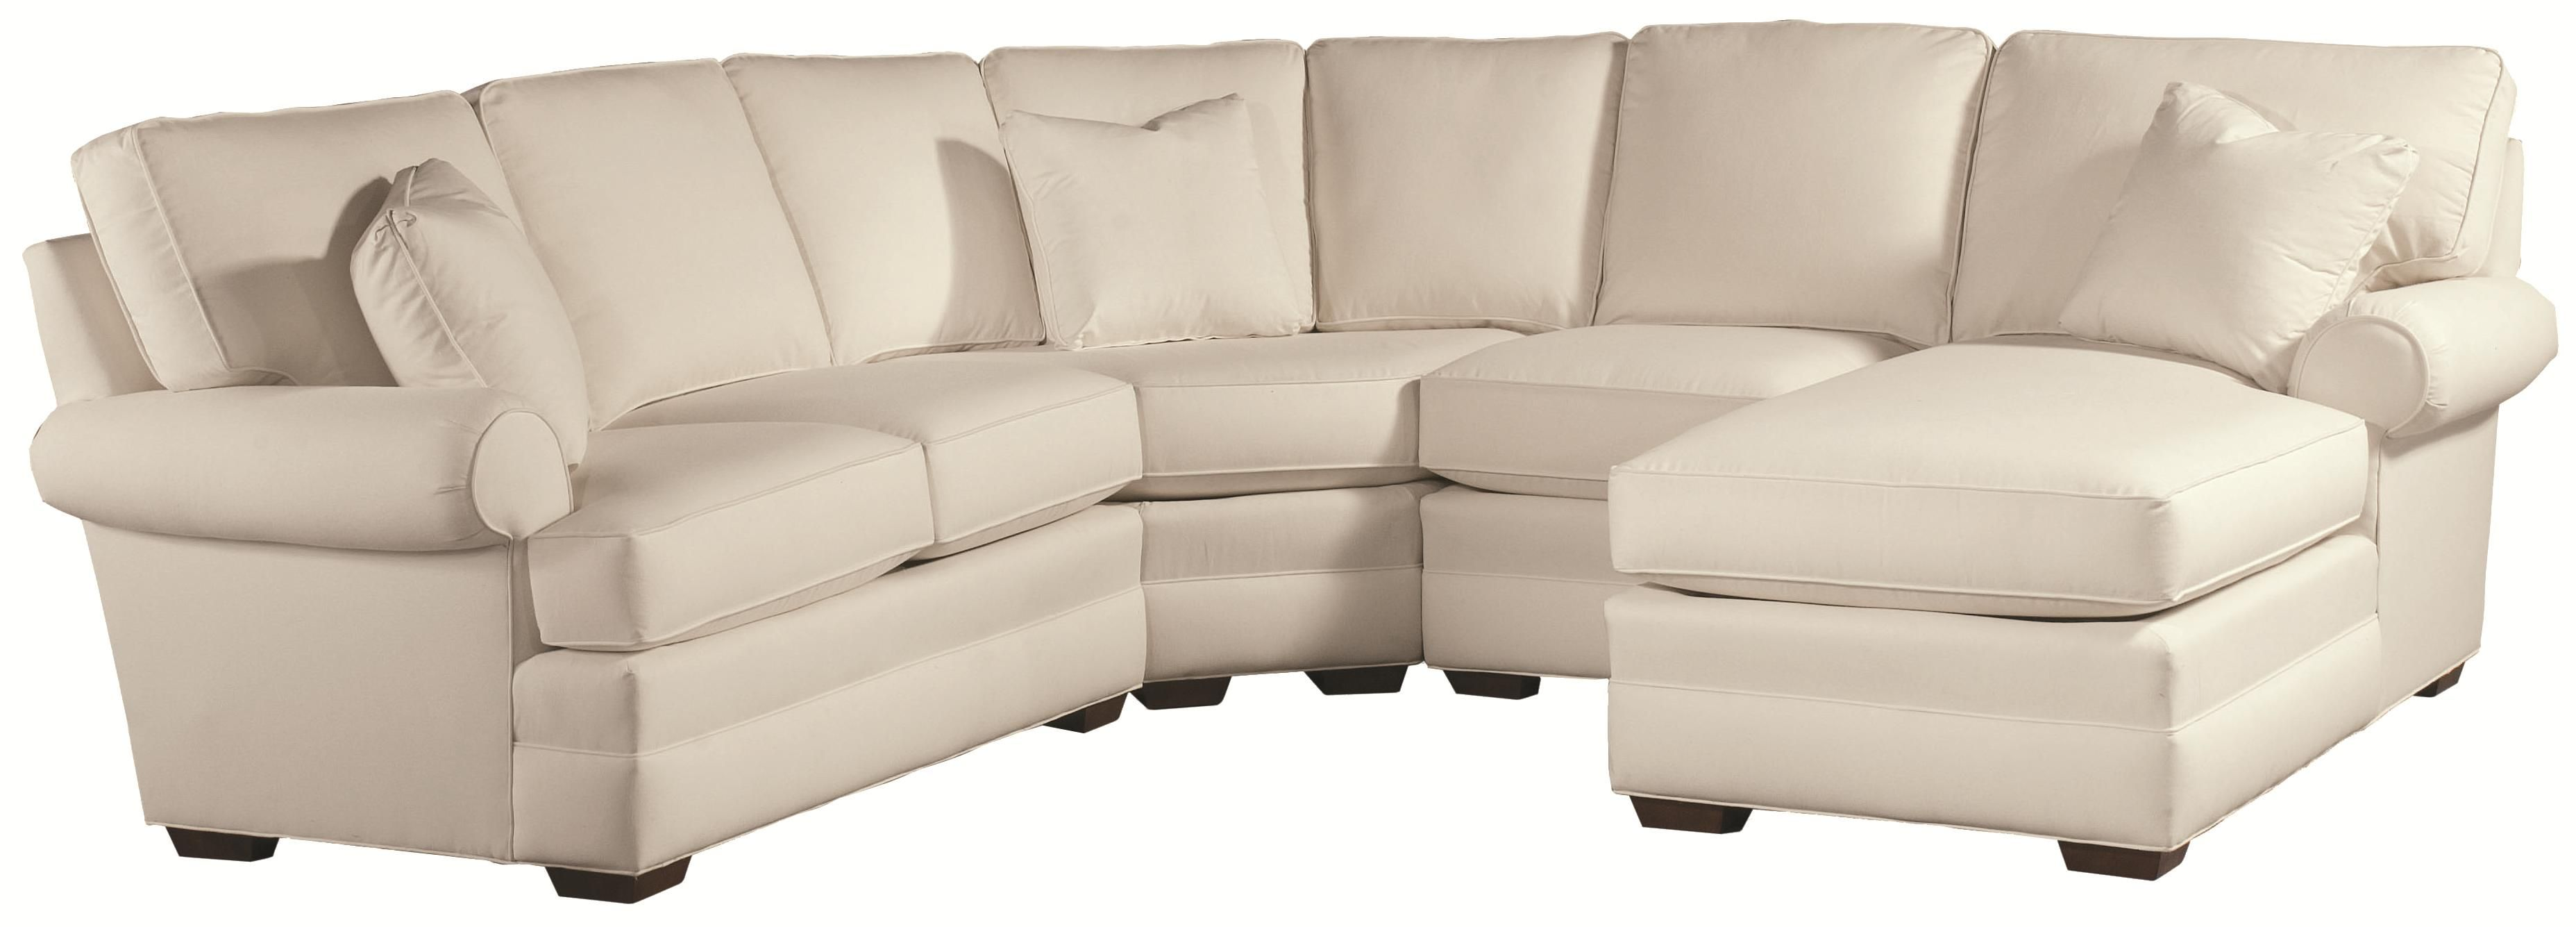 Chesapeake Sectional With Right Facing Chaise By Thomasville